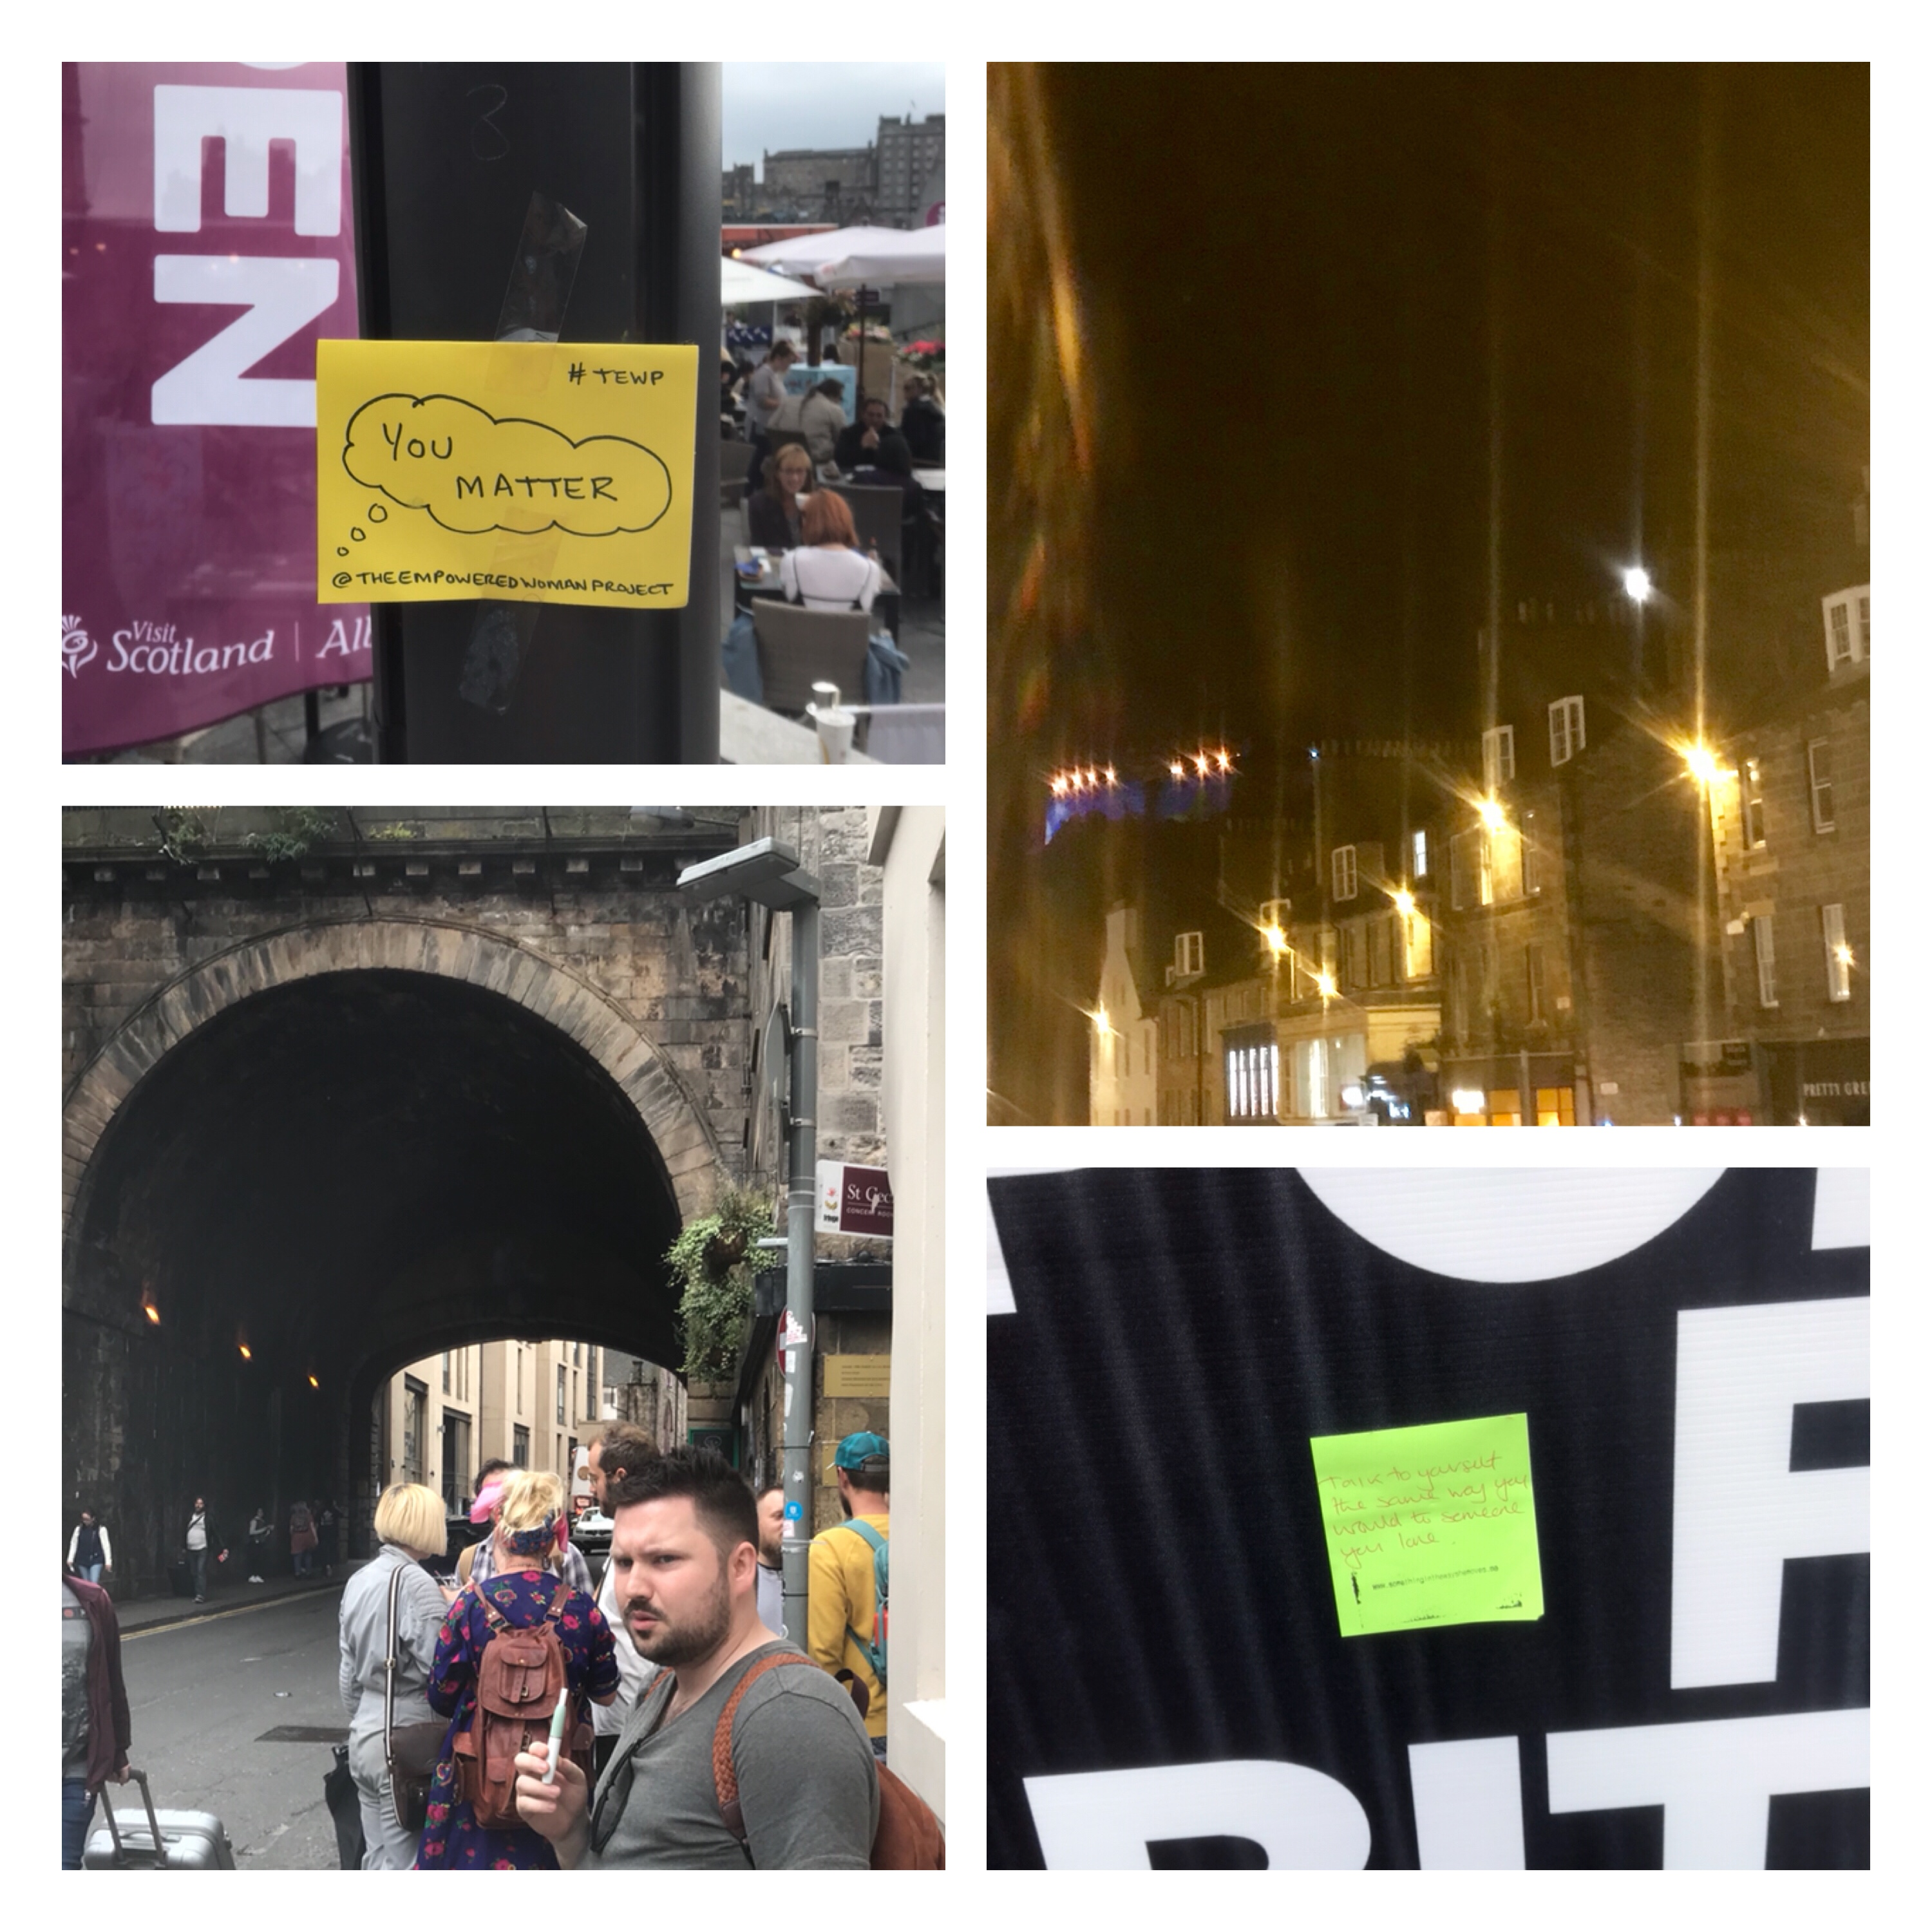 Edinburgh Fringe 2018 random sights